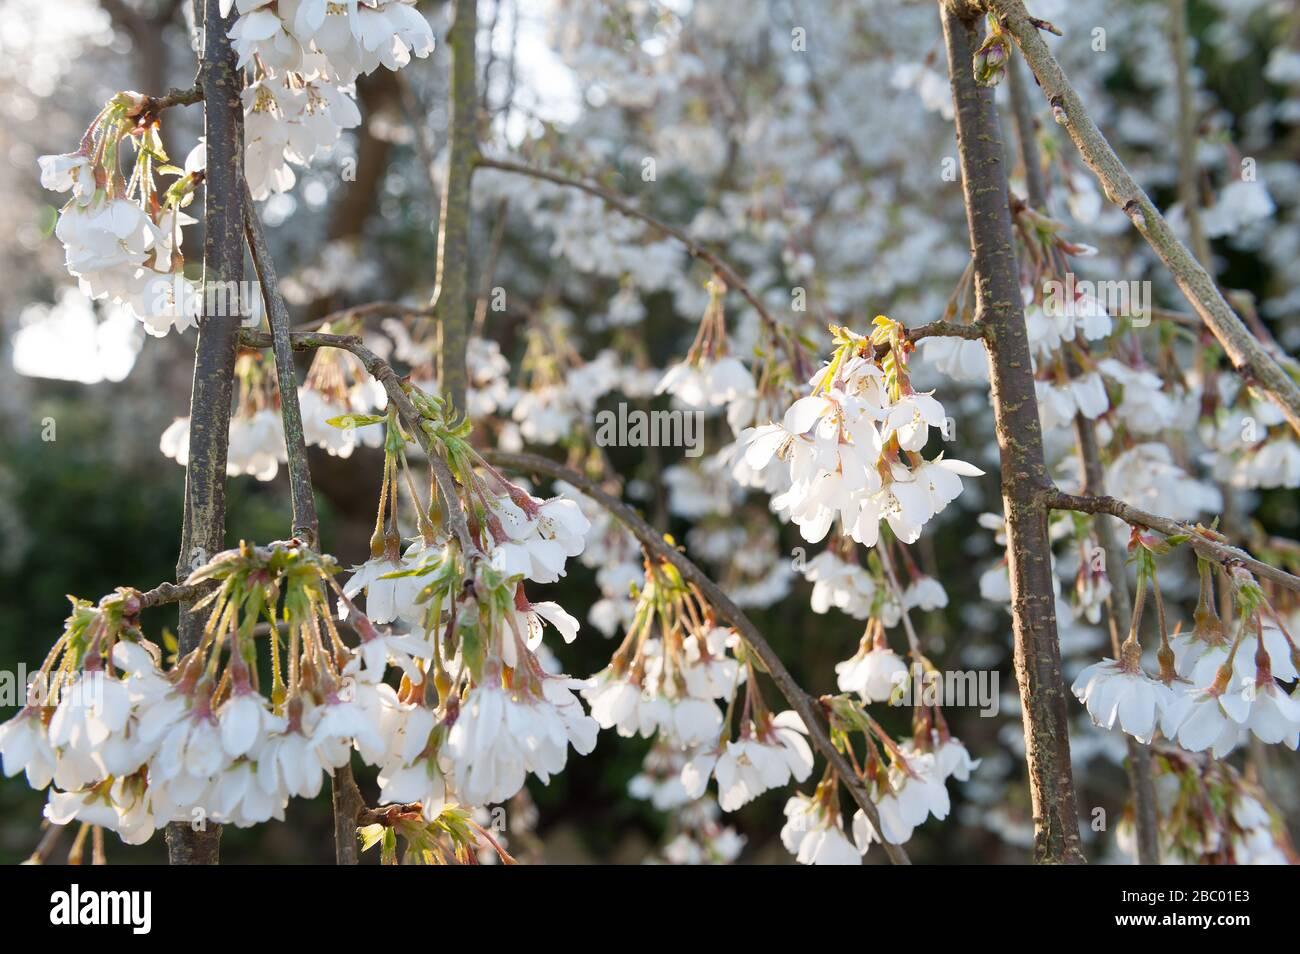 beautiful dogwood branches in large glass vase beautiful.htm graceful branches stock photos   graceful branches stock images  graceful branches stock photos